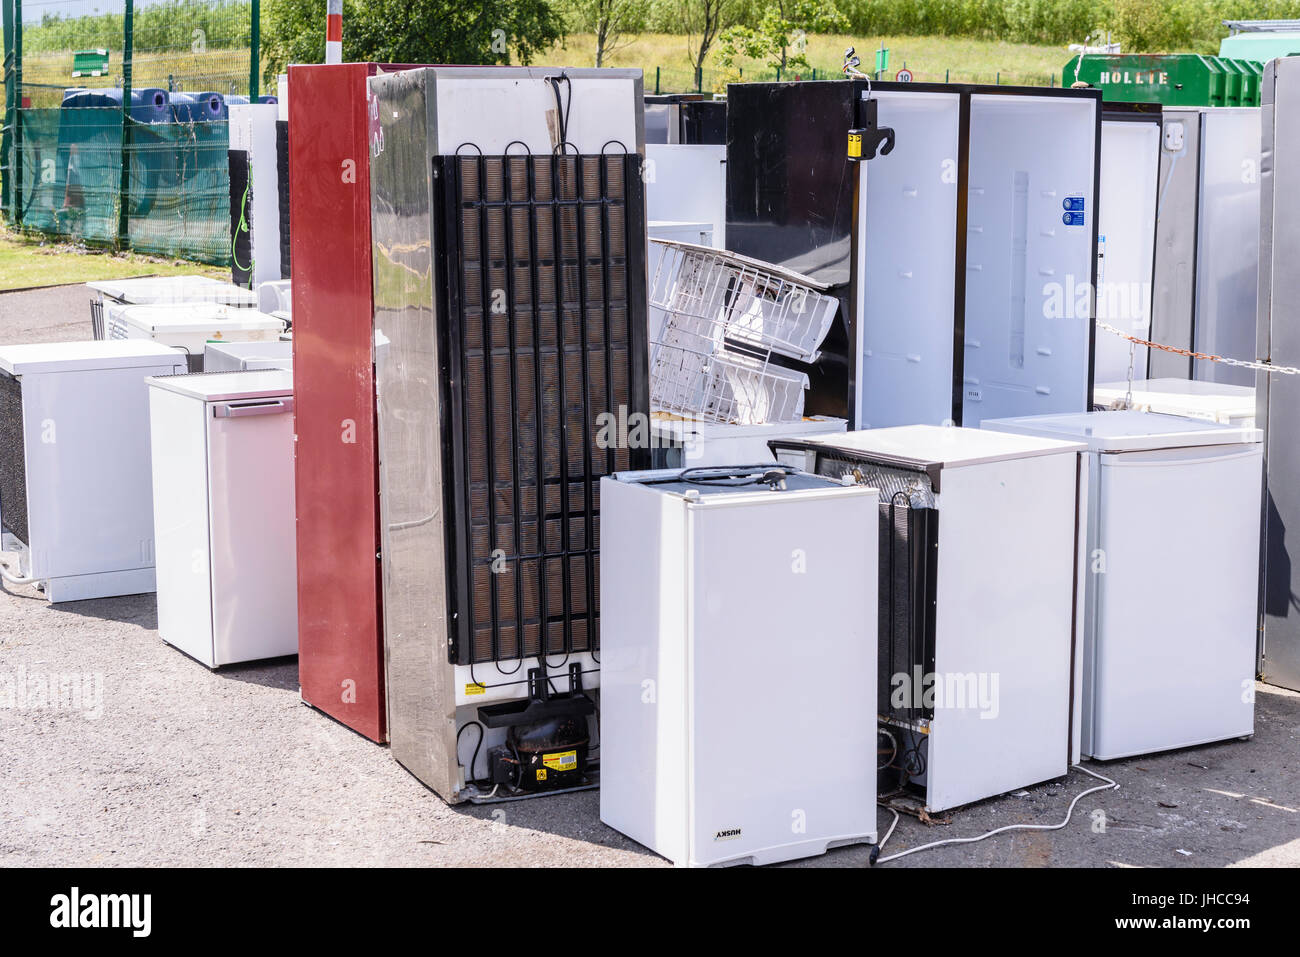 Broken refrigerators at a recycling centre, waiting to be disposed of and recycled in an environmentally friendly - Stock Image